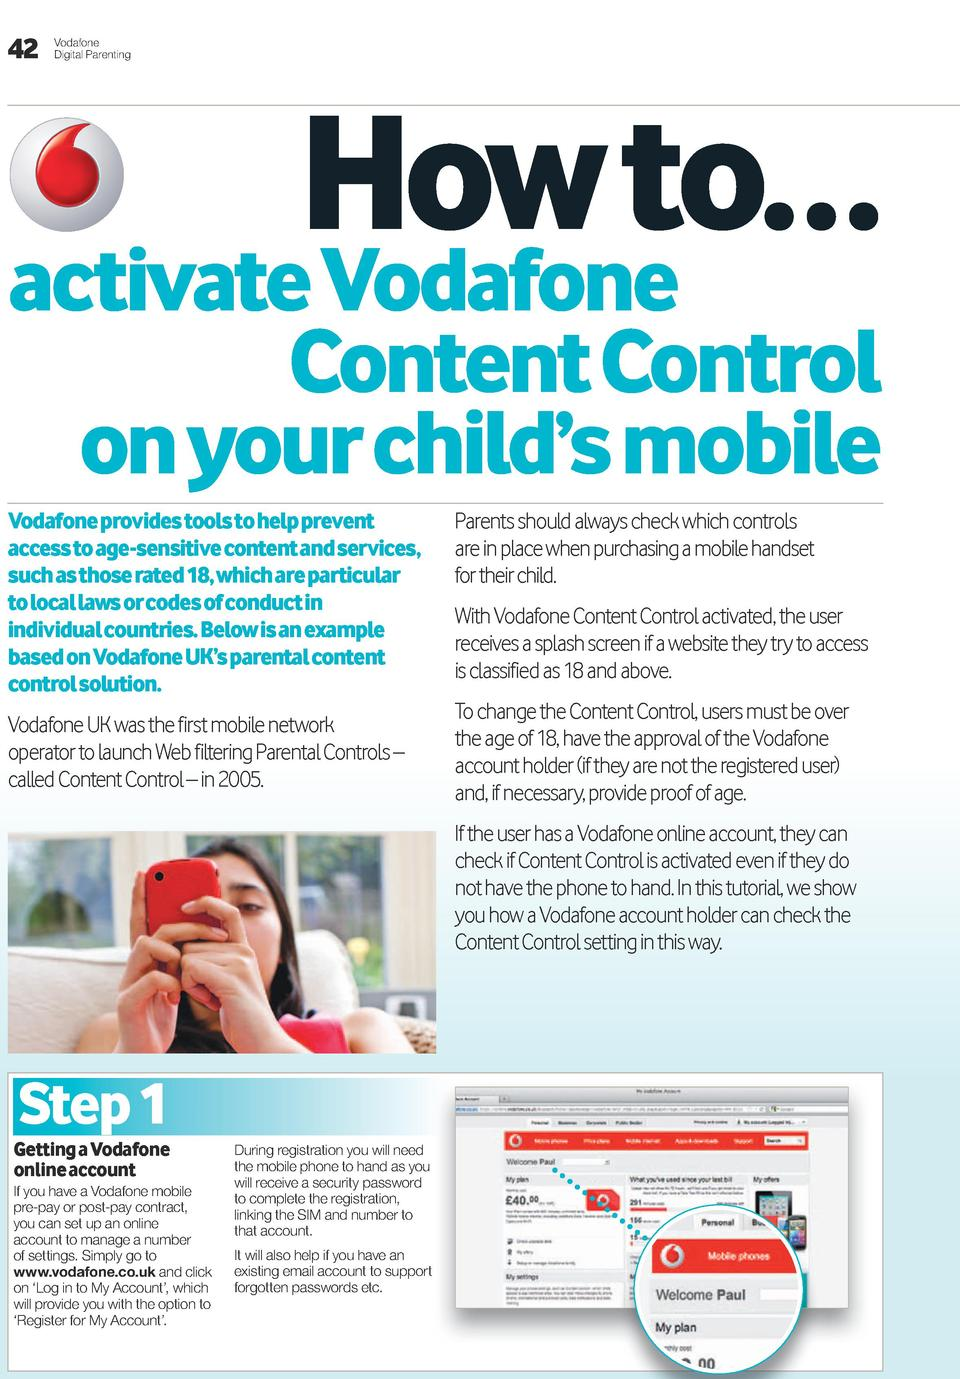 42  Vodafone Digital Parenting  how to    activate Vodafone content control on your child   s mobile  Vodafone provides to...